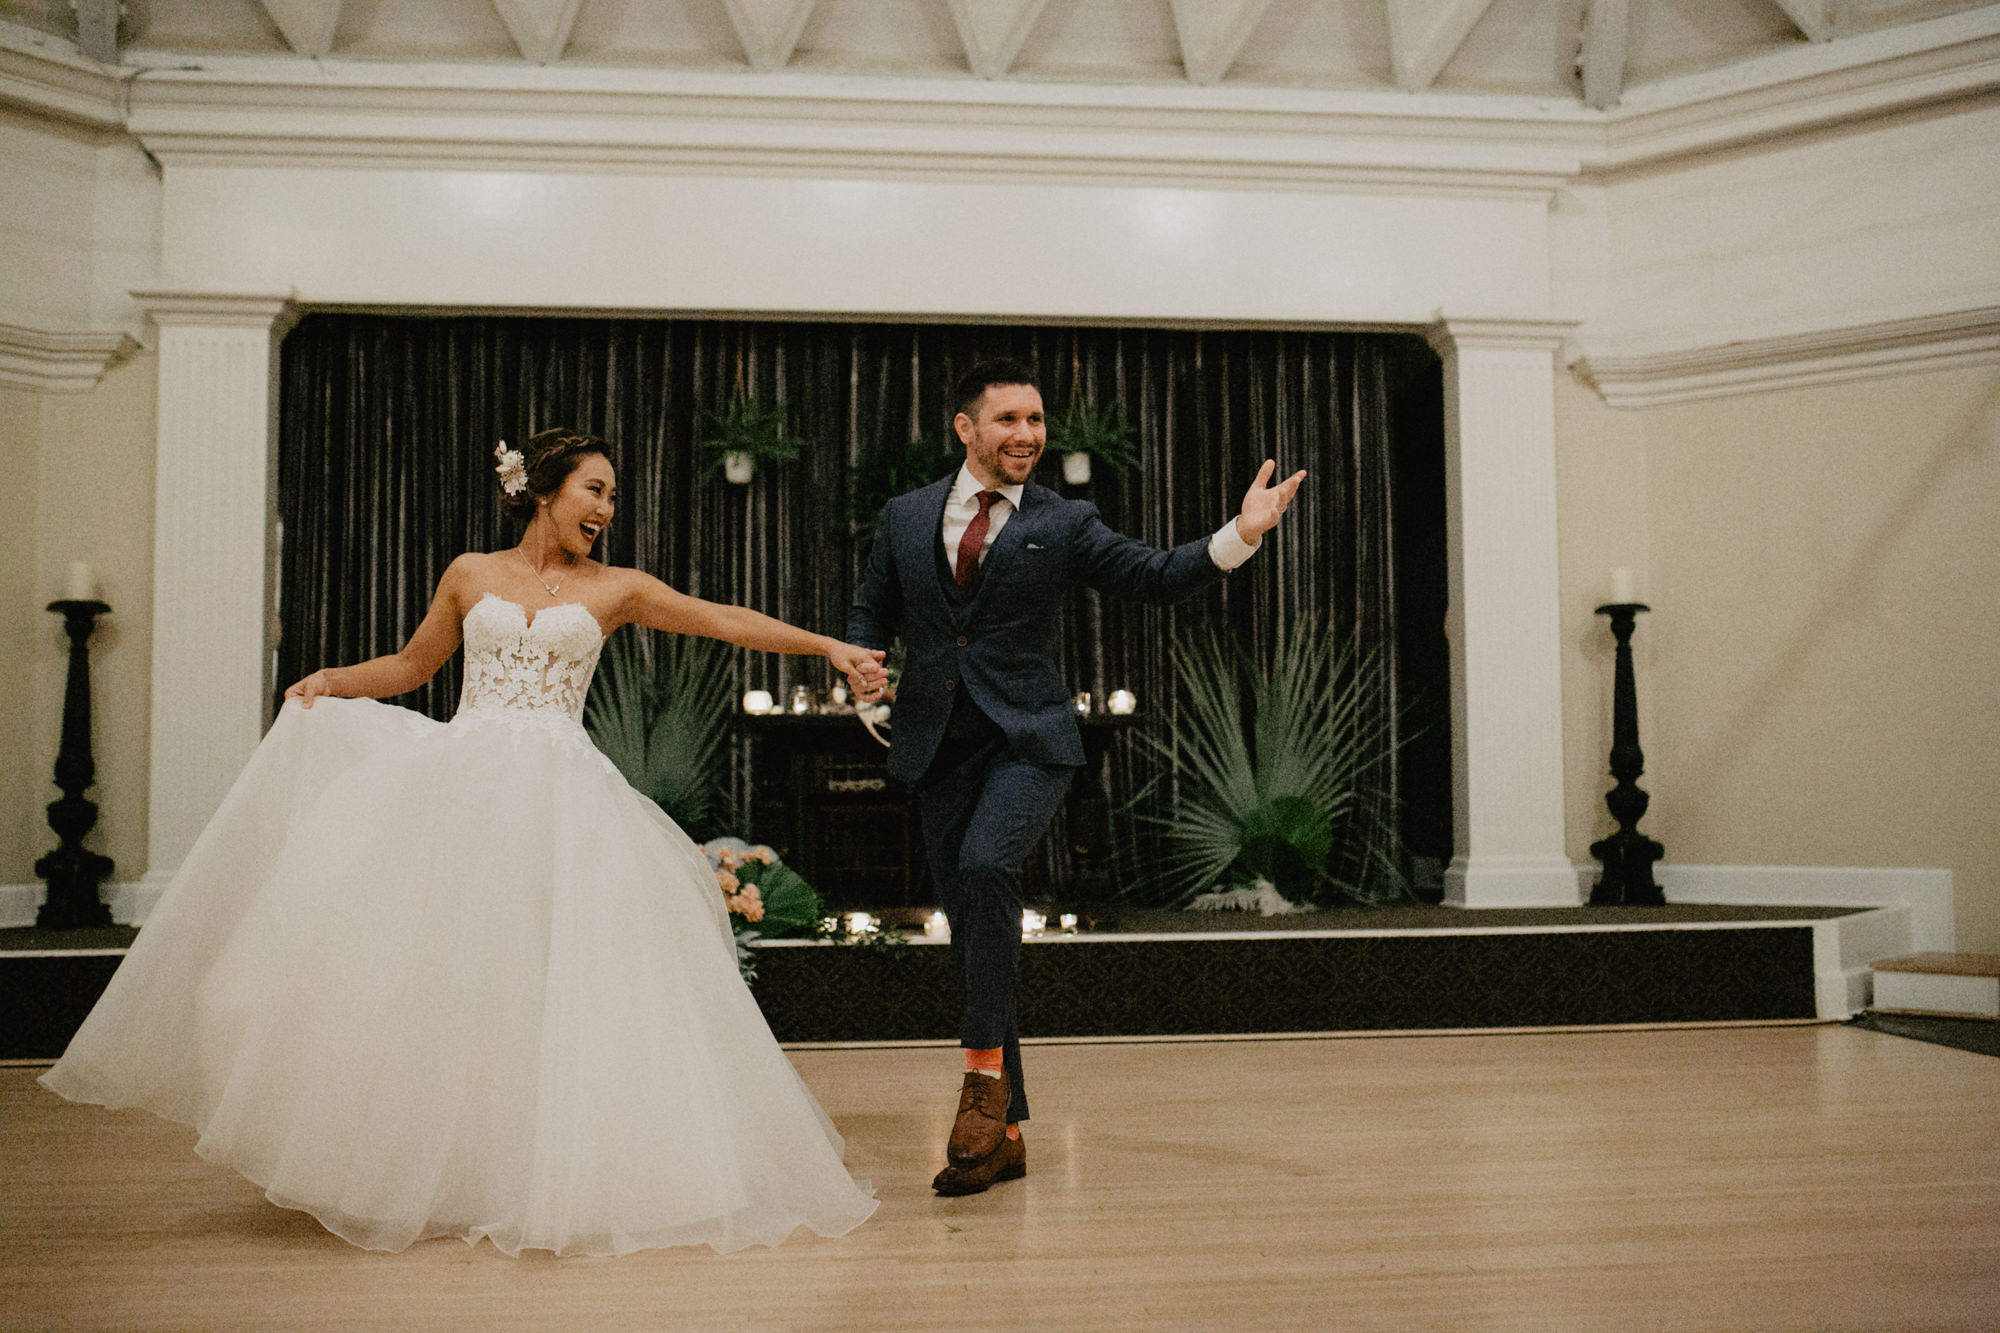 san clemente casino wedding photographer -98.jpg